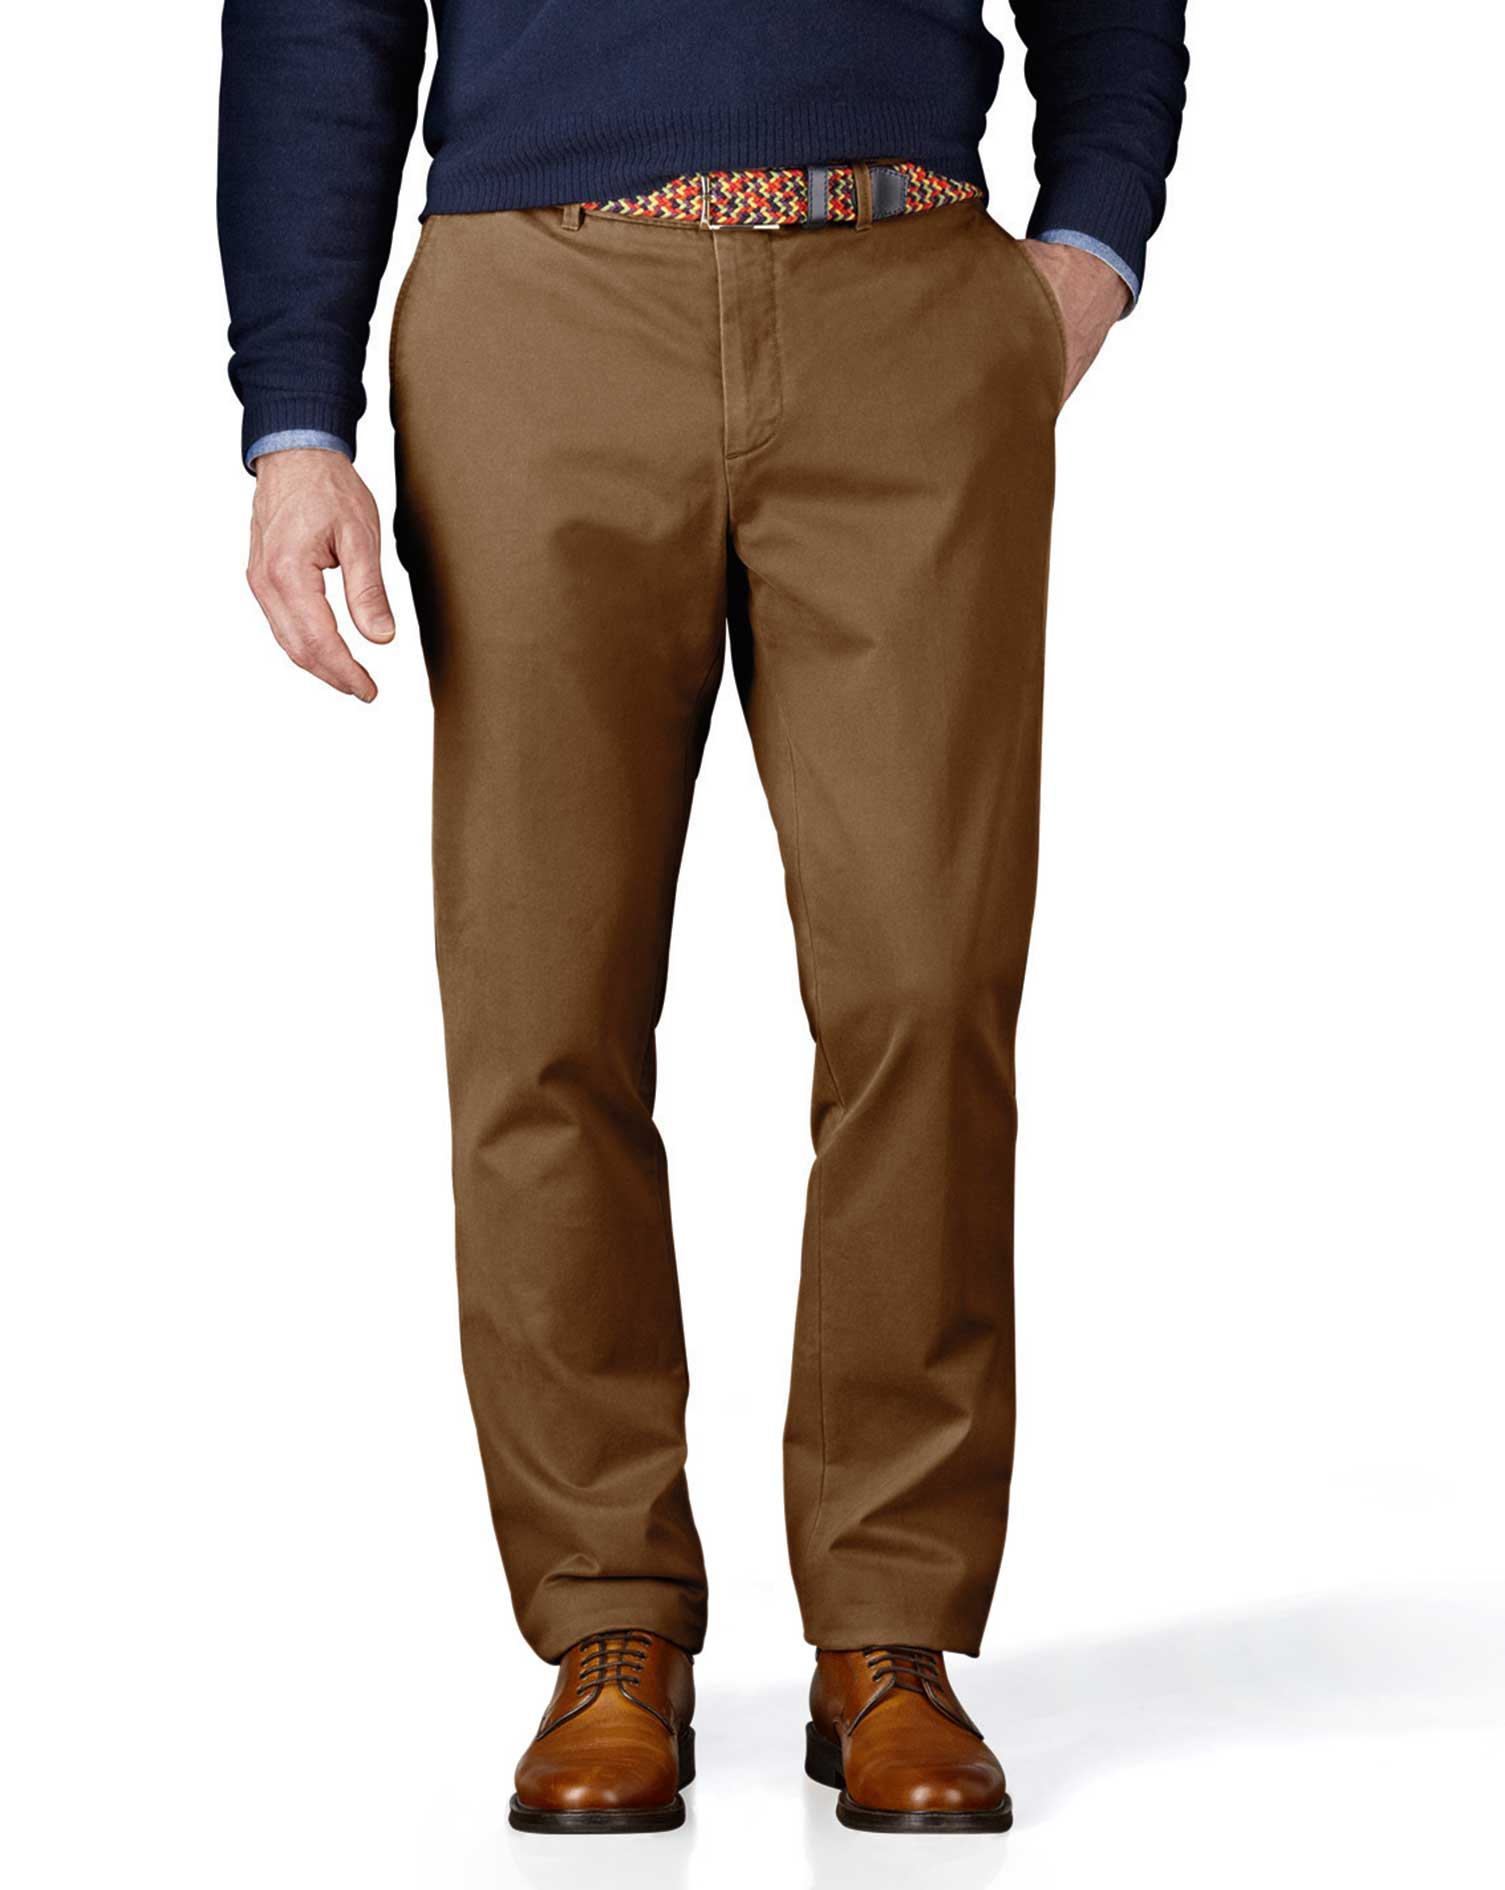 Camel Extra Slim Fit Flat Front Cotton Chino Trousers Size W32 L34 by Charles Tyrwhitt